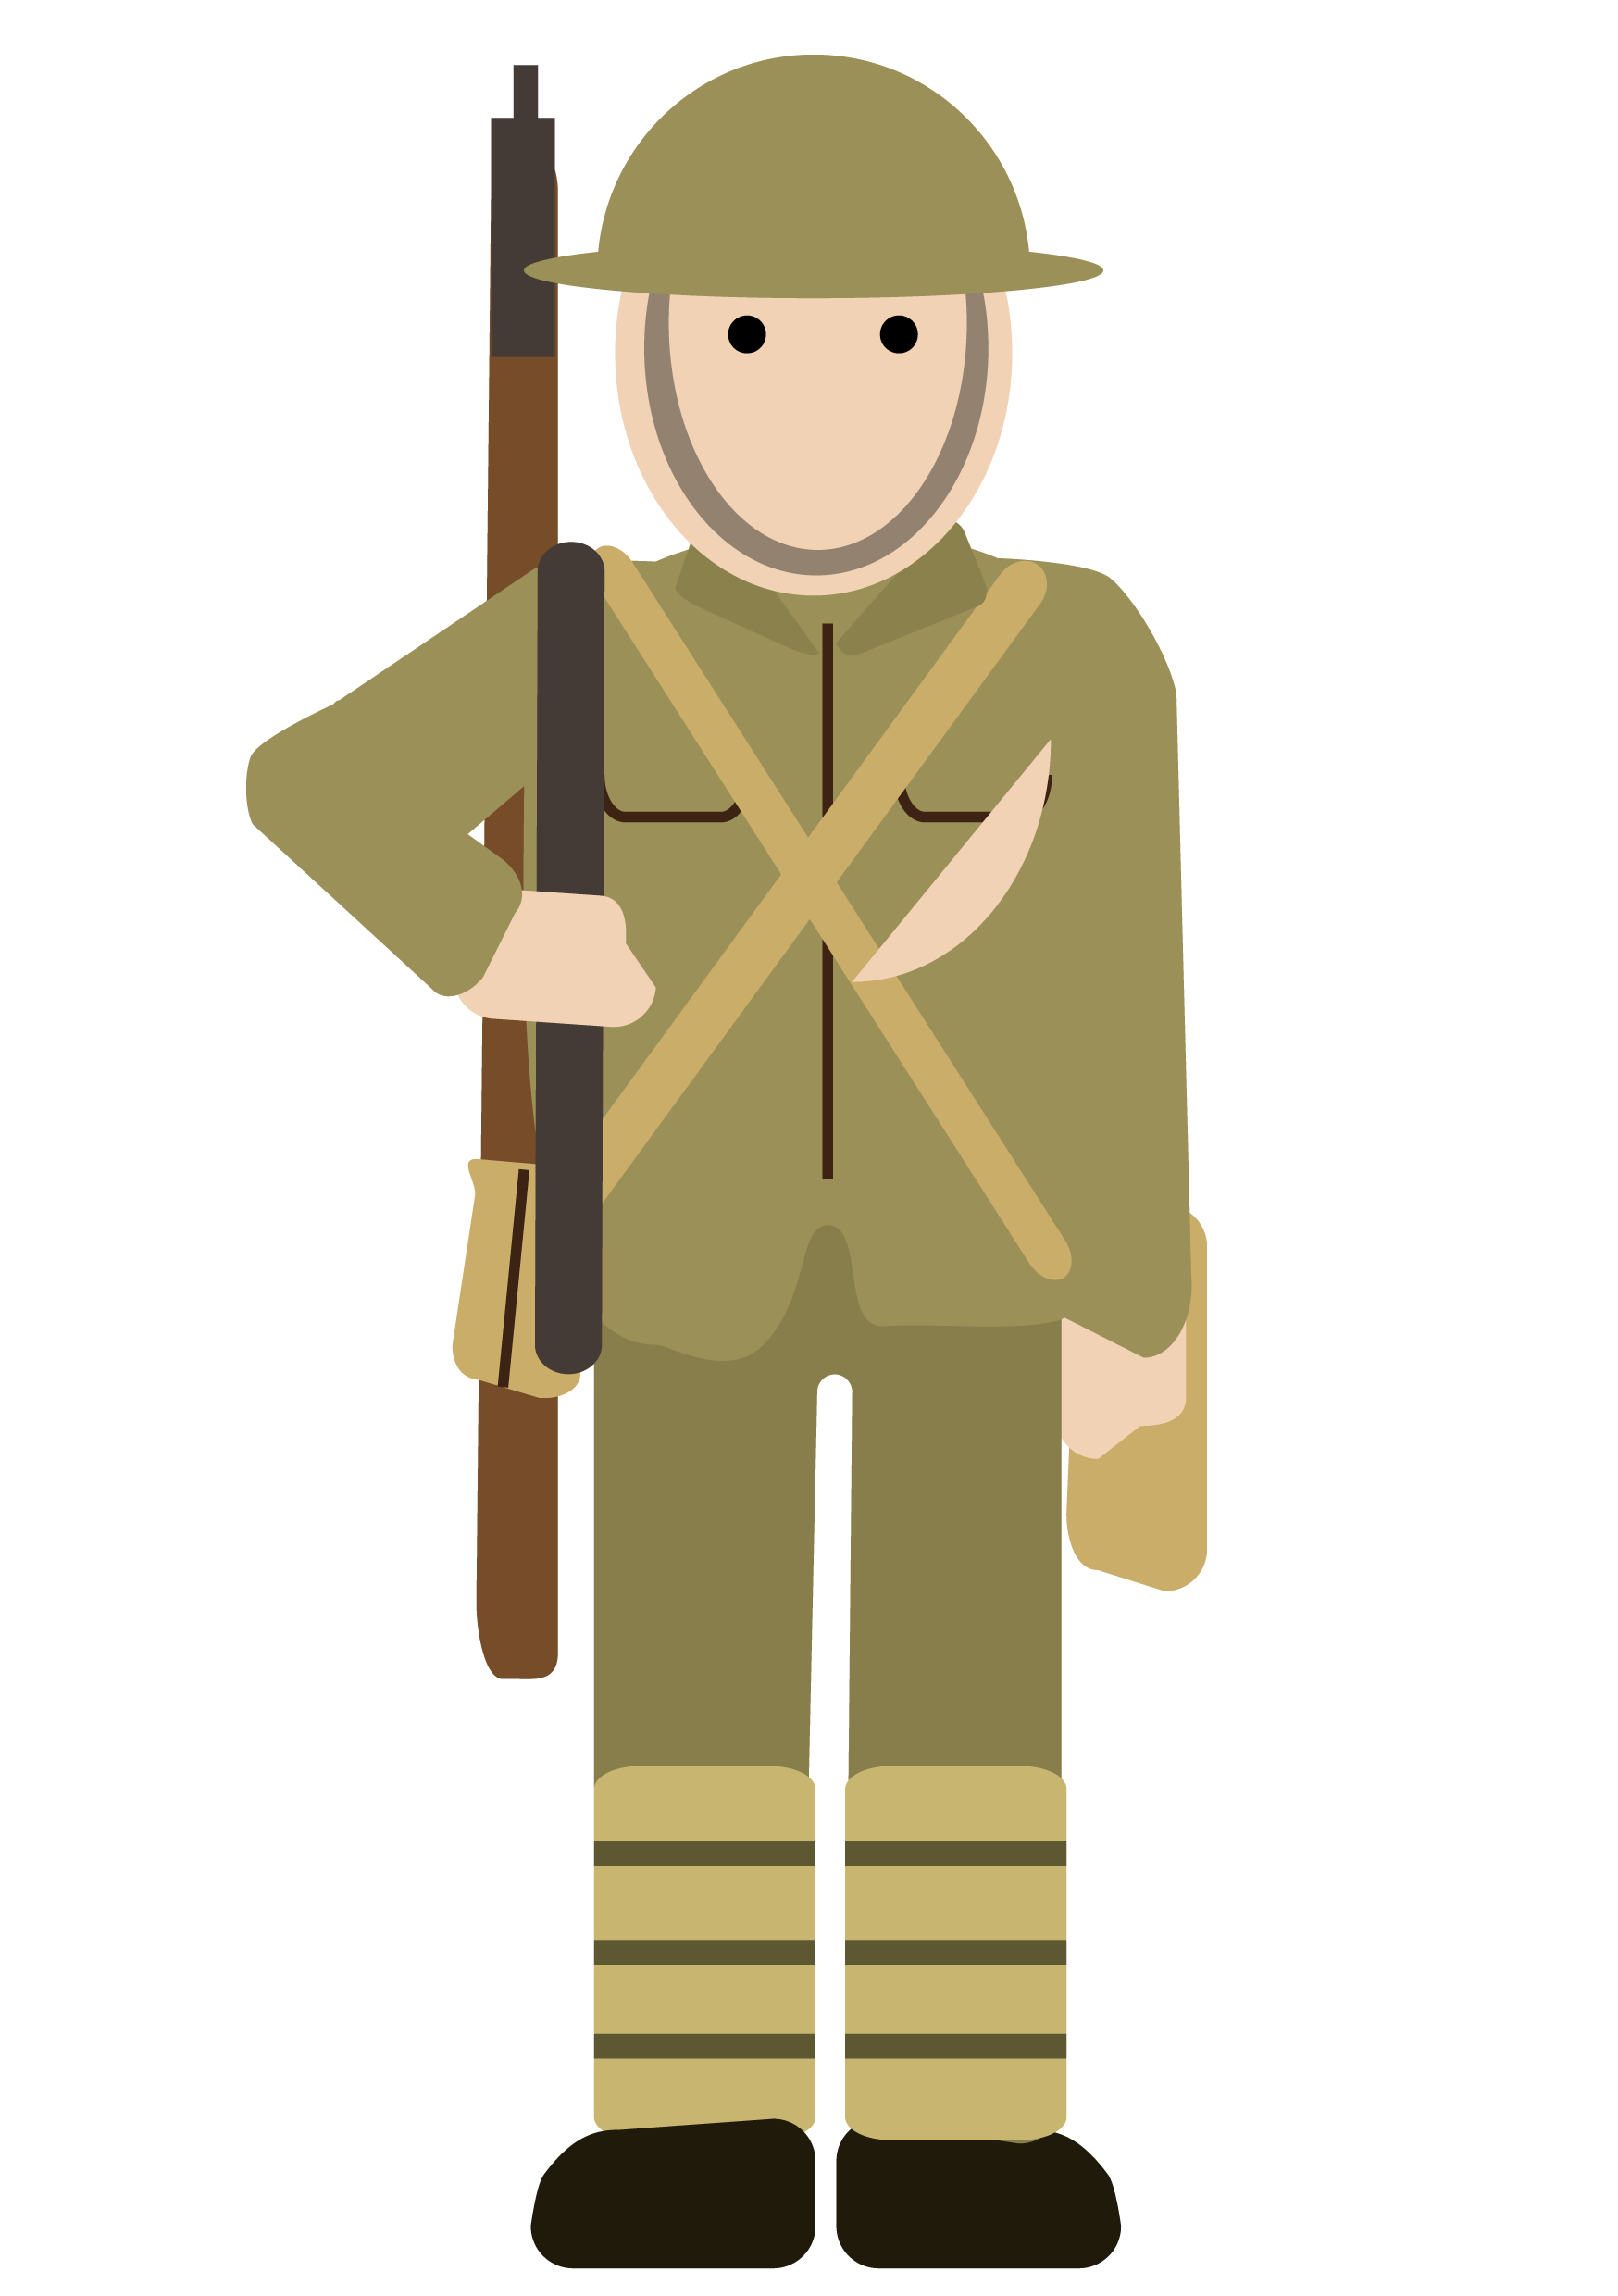 Ww free on dumielauxepices. History clipart ww1